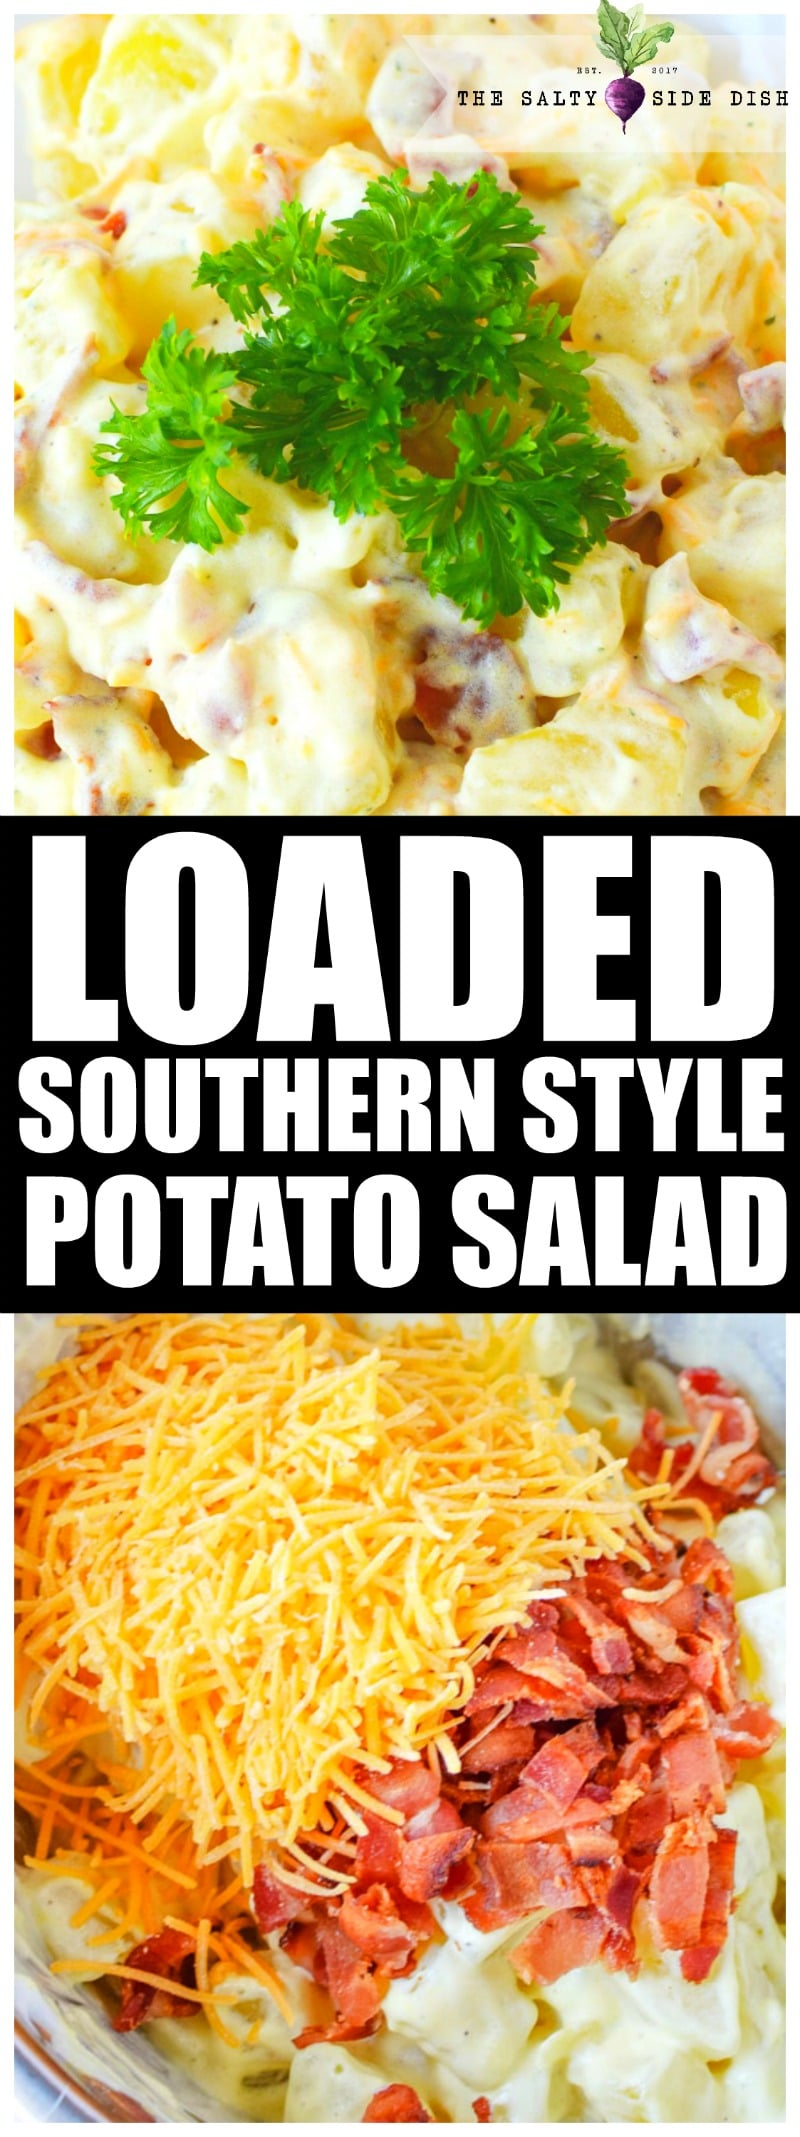 Southern Potato Salad loaded with Cheese and Bacon | Best Ever Potato Salad Recipe #potatosalad #salad #thanksgiving #sidedish #holidayfood #sides #potatoes